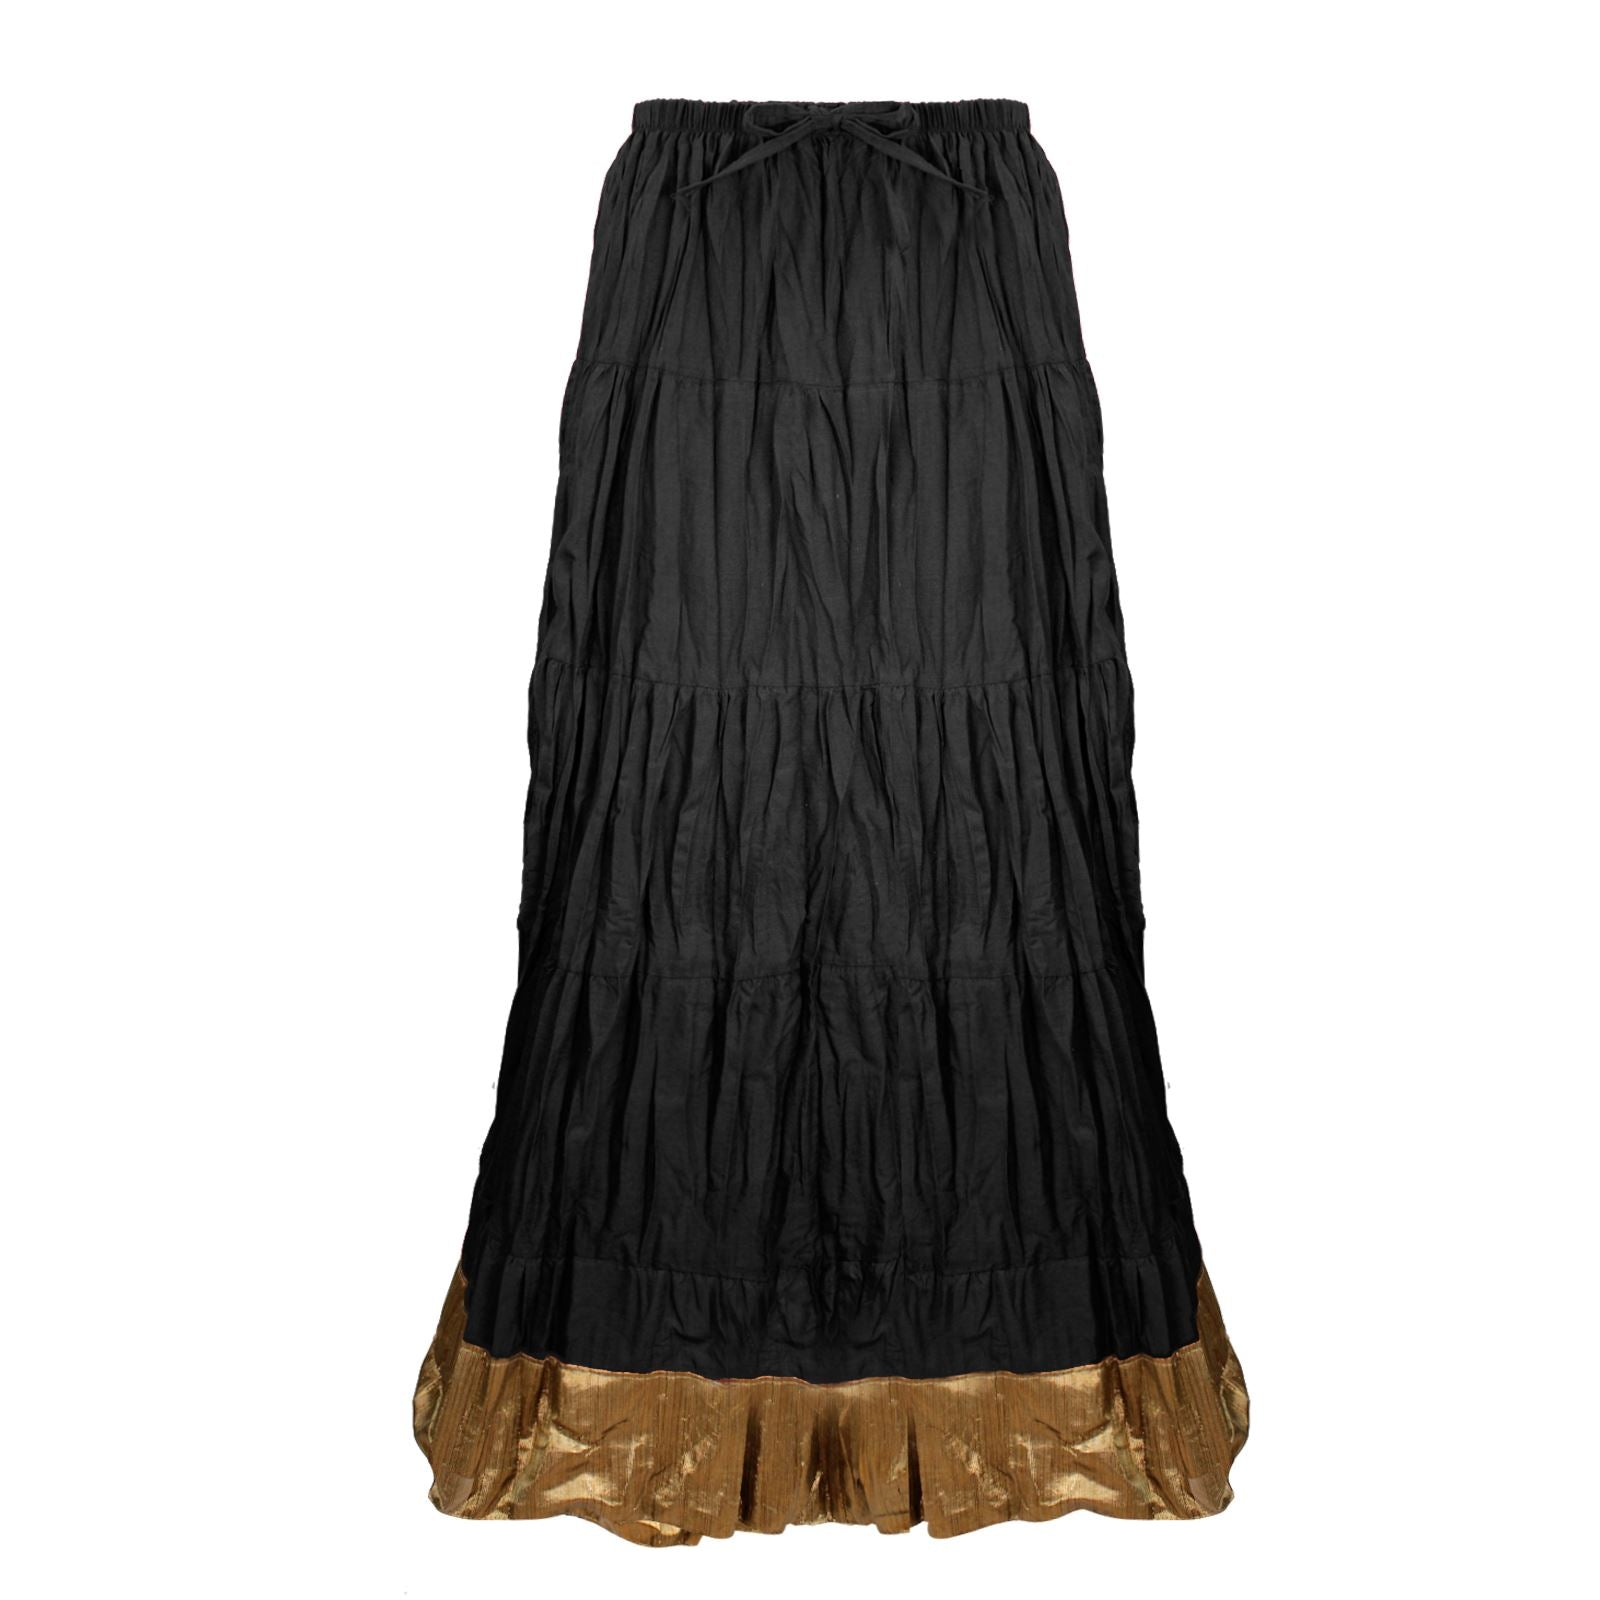 Color: Black Cotton Long Maxi Skirt Size: One Size: Regular (8-16)